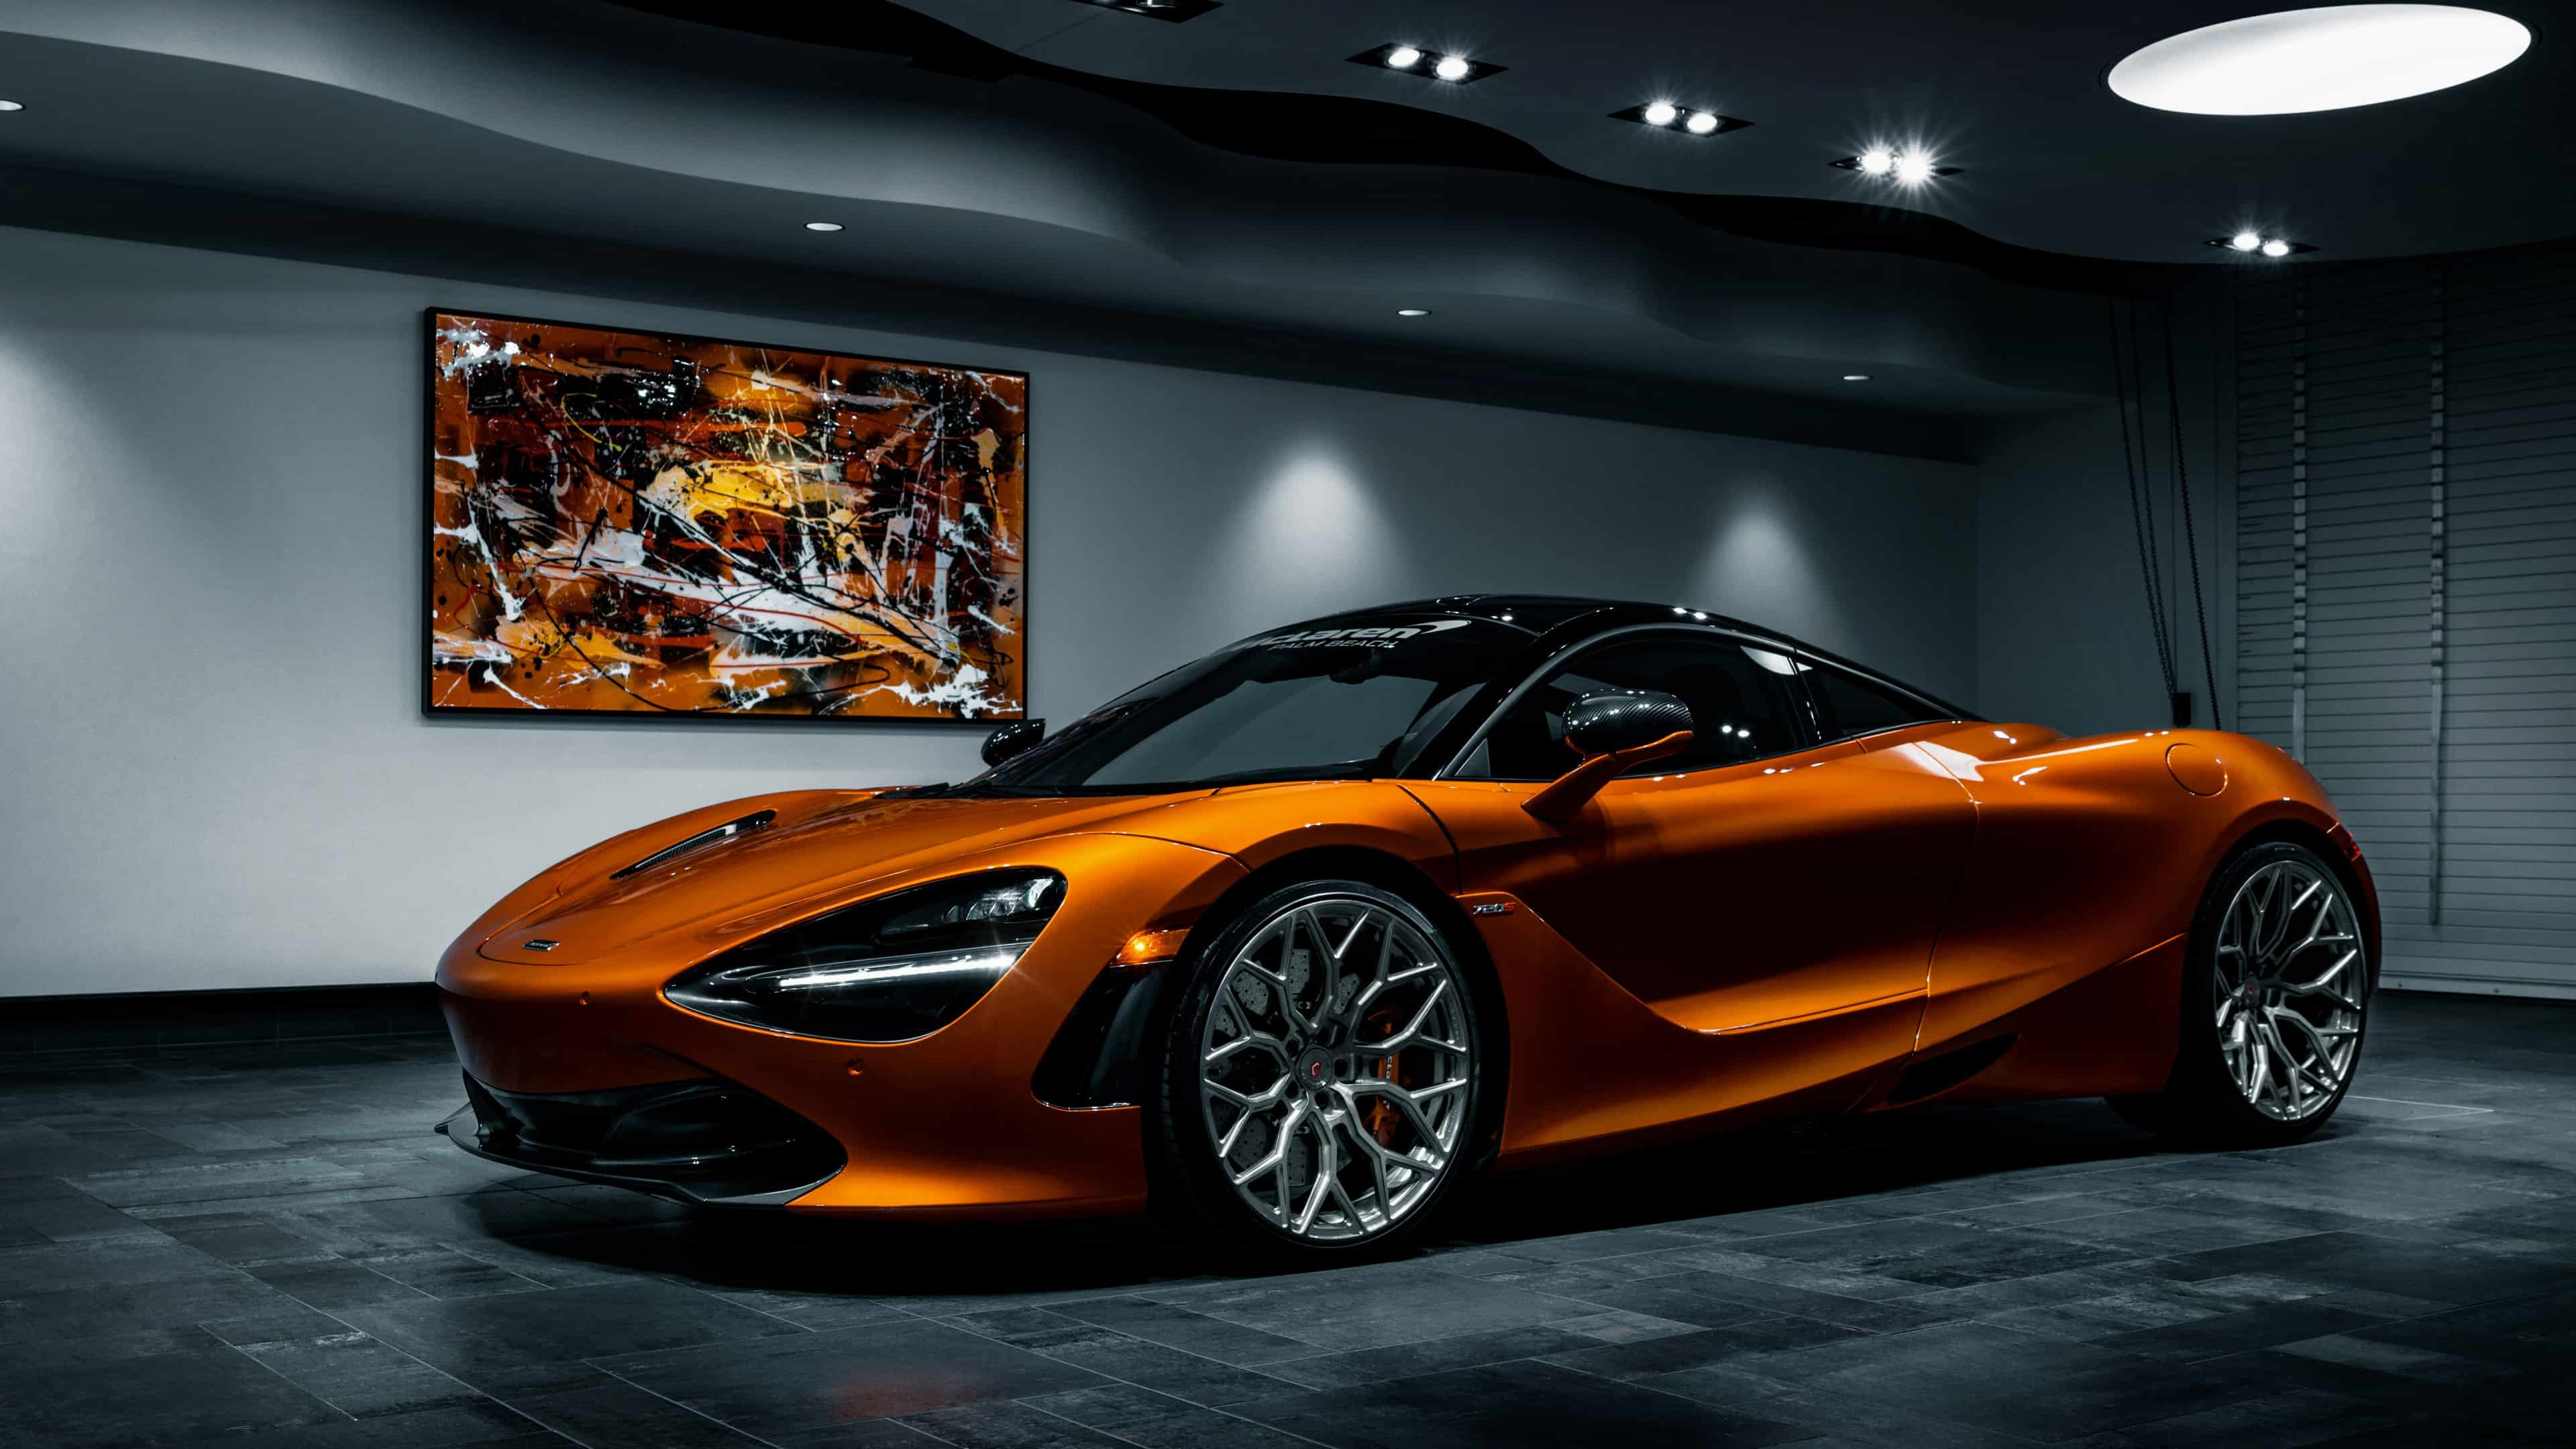 mclaren 720s vossen orange uhd 4k wallpaper